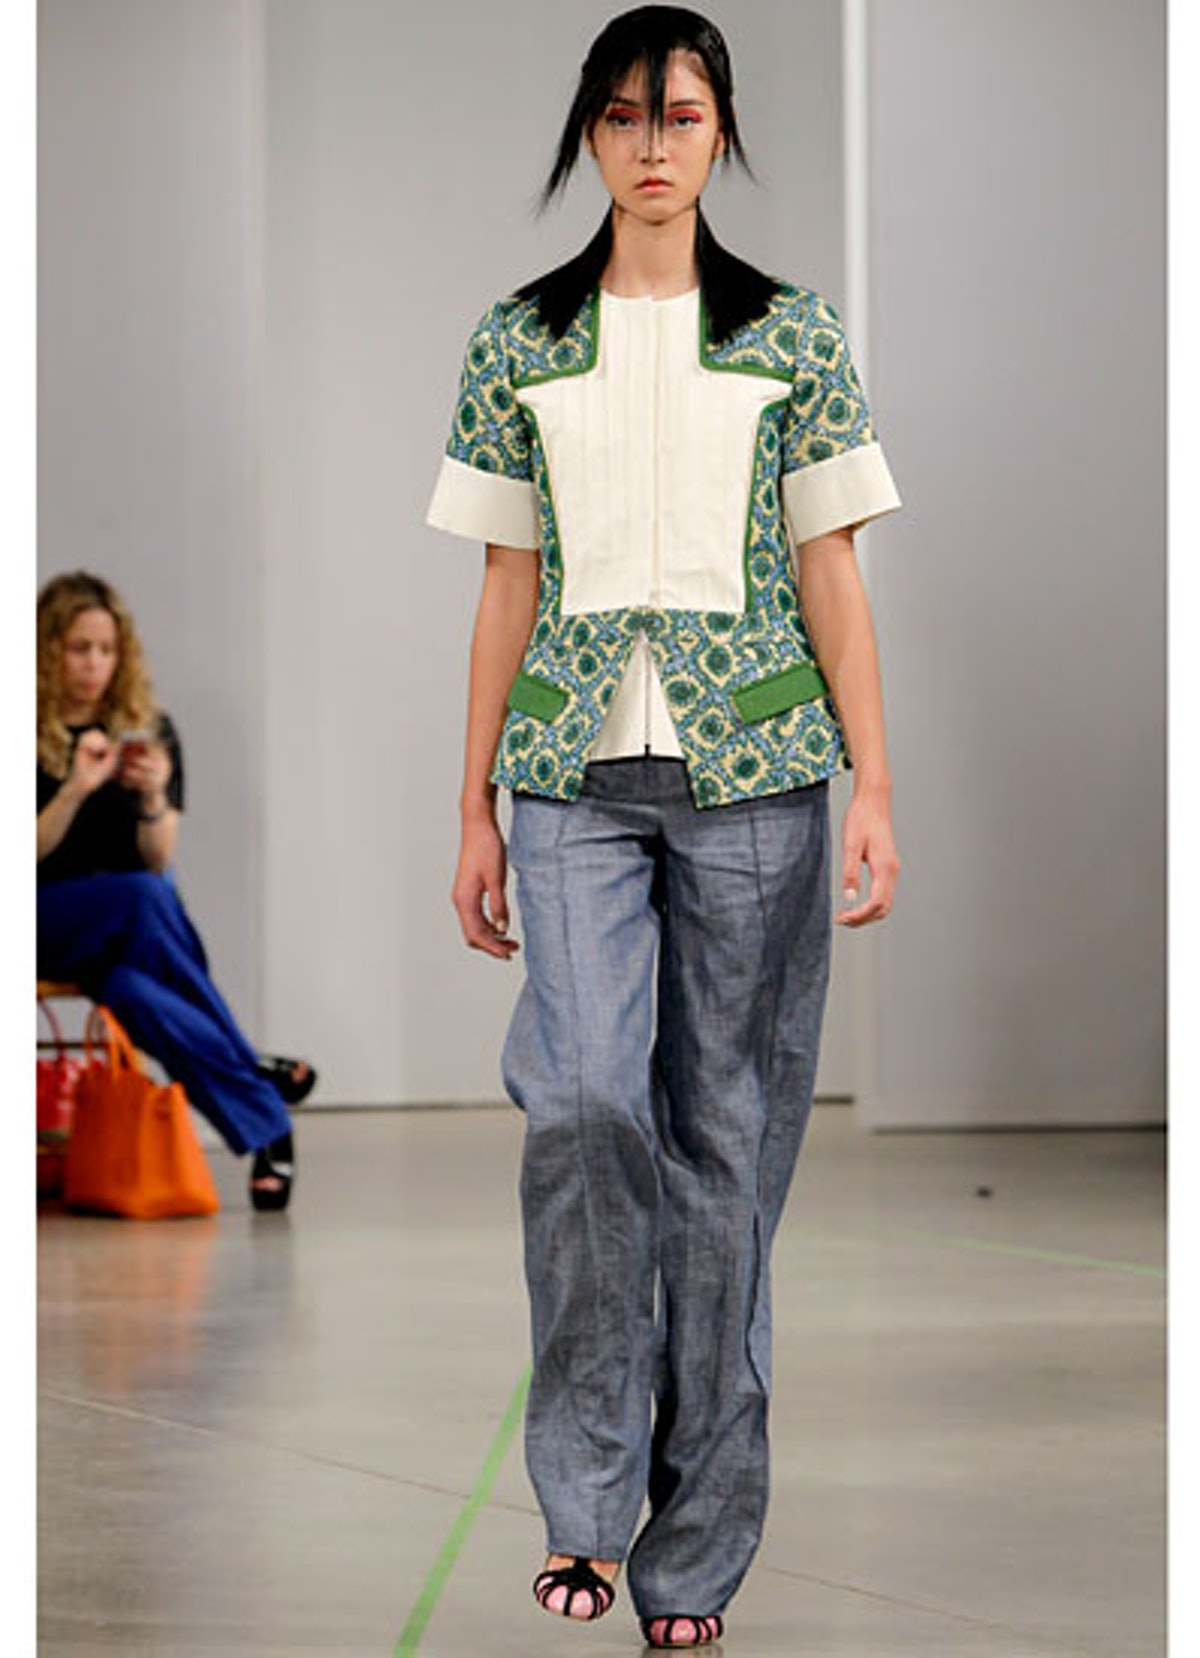 fass-creatures-of-the-wind-spring-2013-runway-17-v.jpg